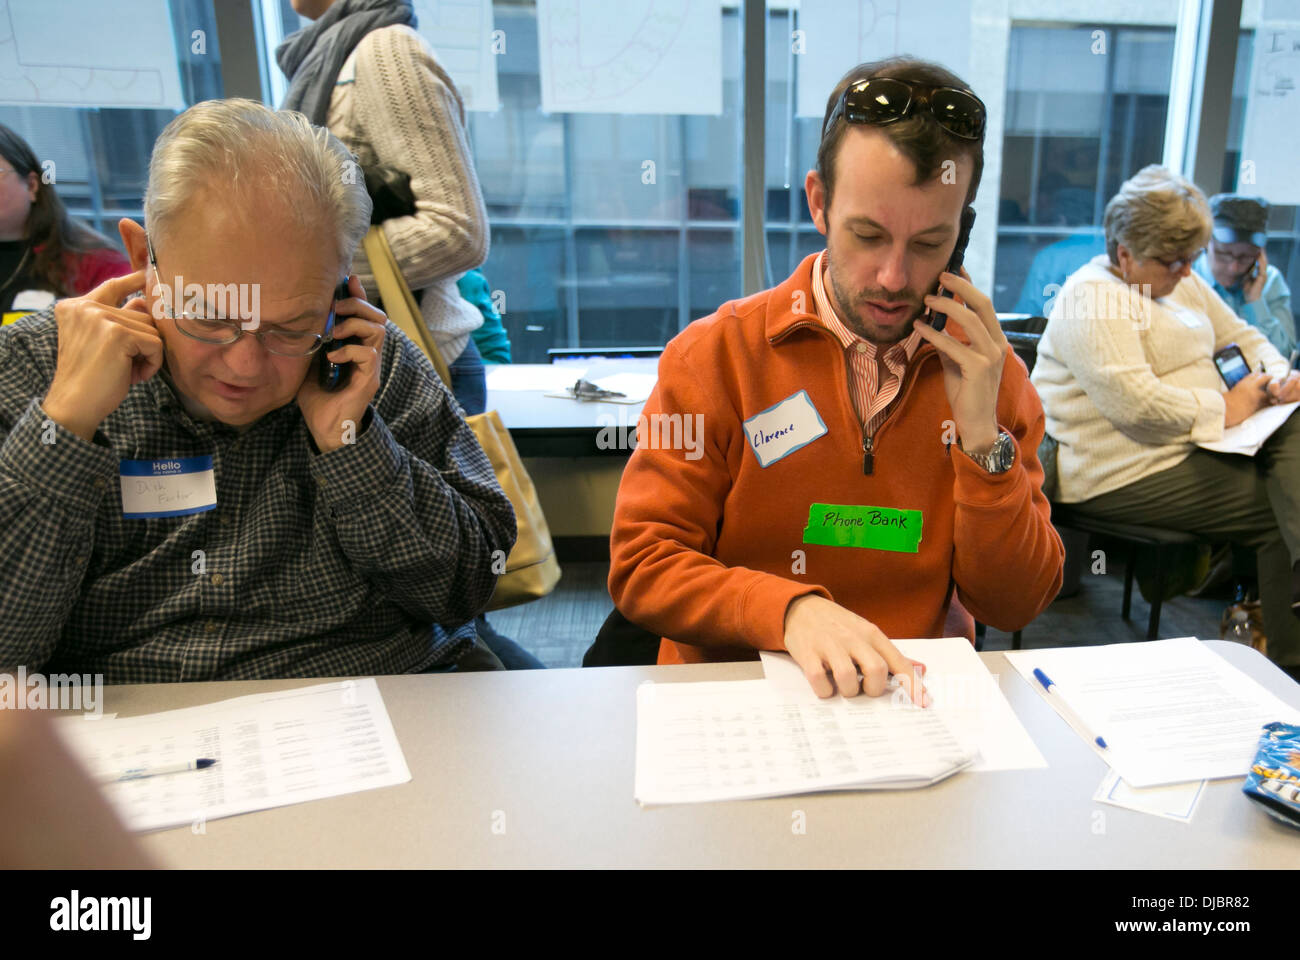 Volunteers at a phone bank for Democratic political